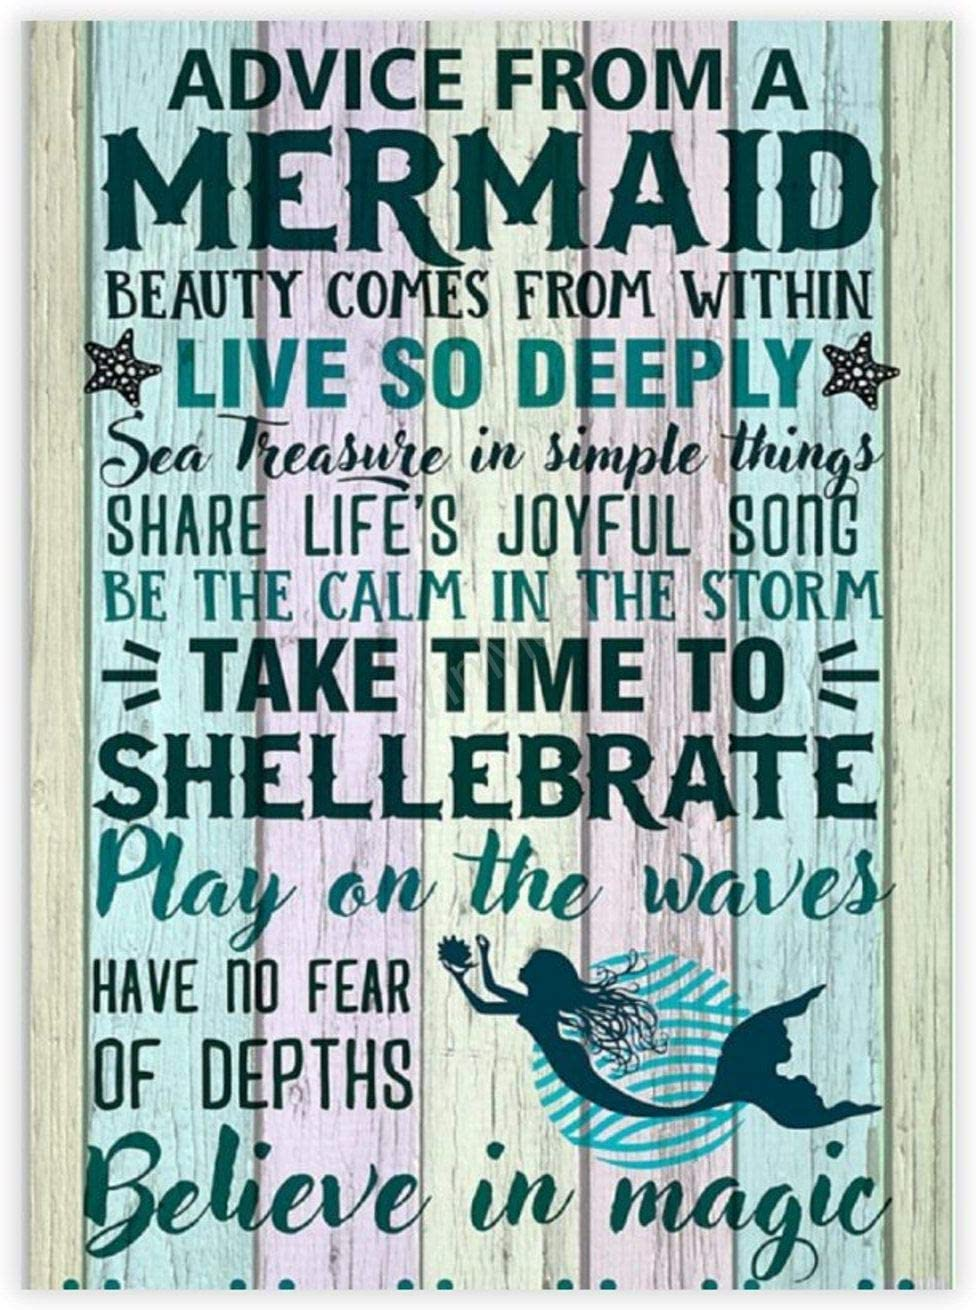 Wood Plank Board,Wall Art Wooden Wall Hanging Art Advice From A Mermaid Inspirational Farmhouse Wall Plaque 8